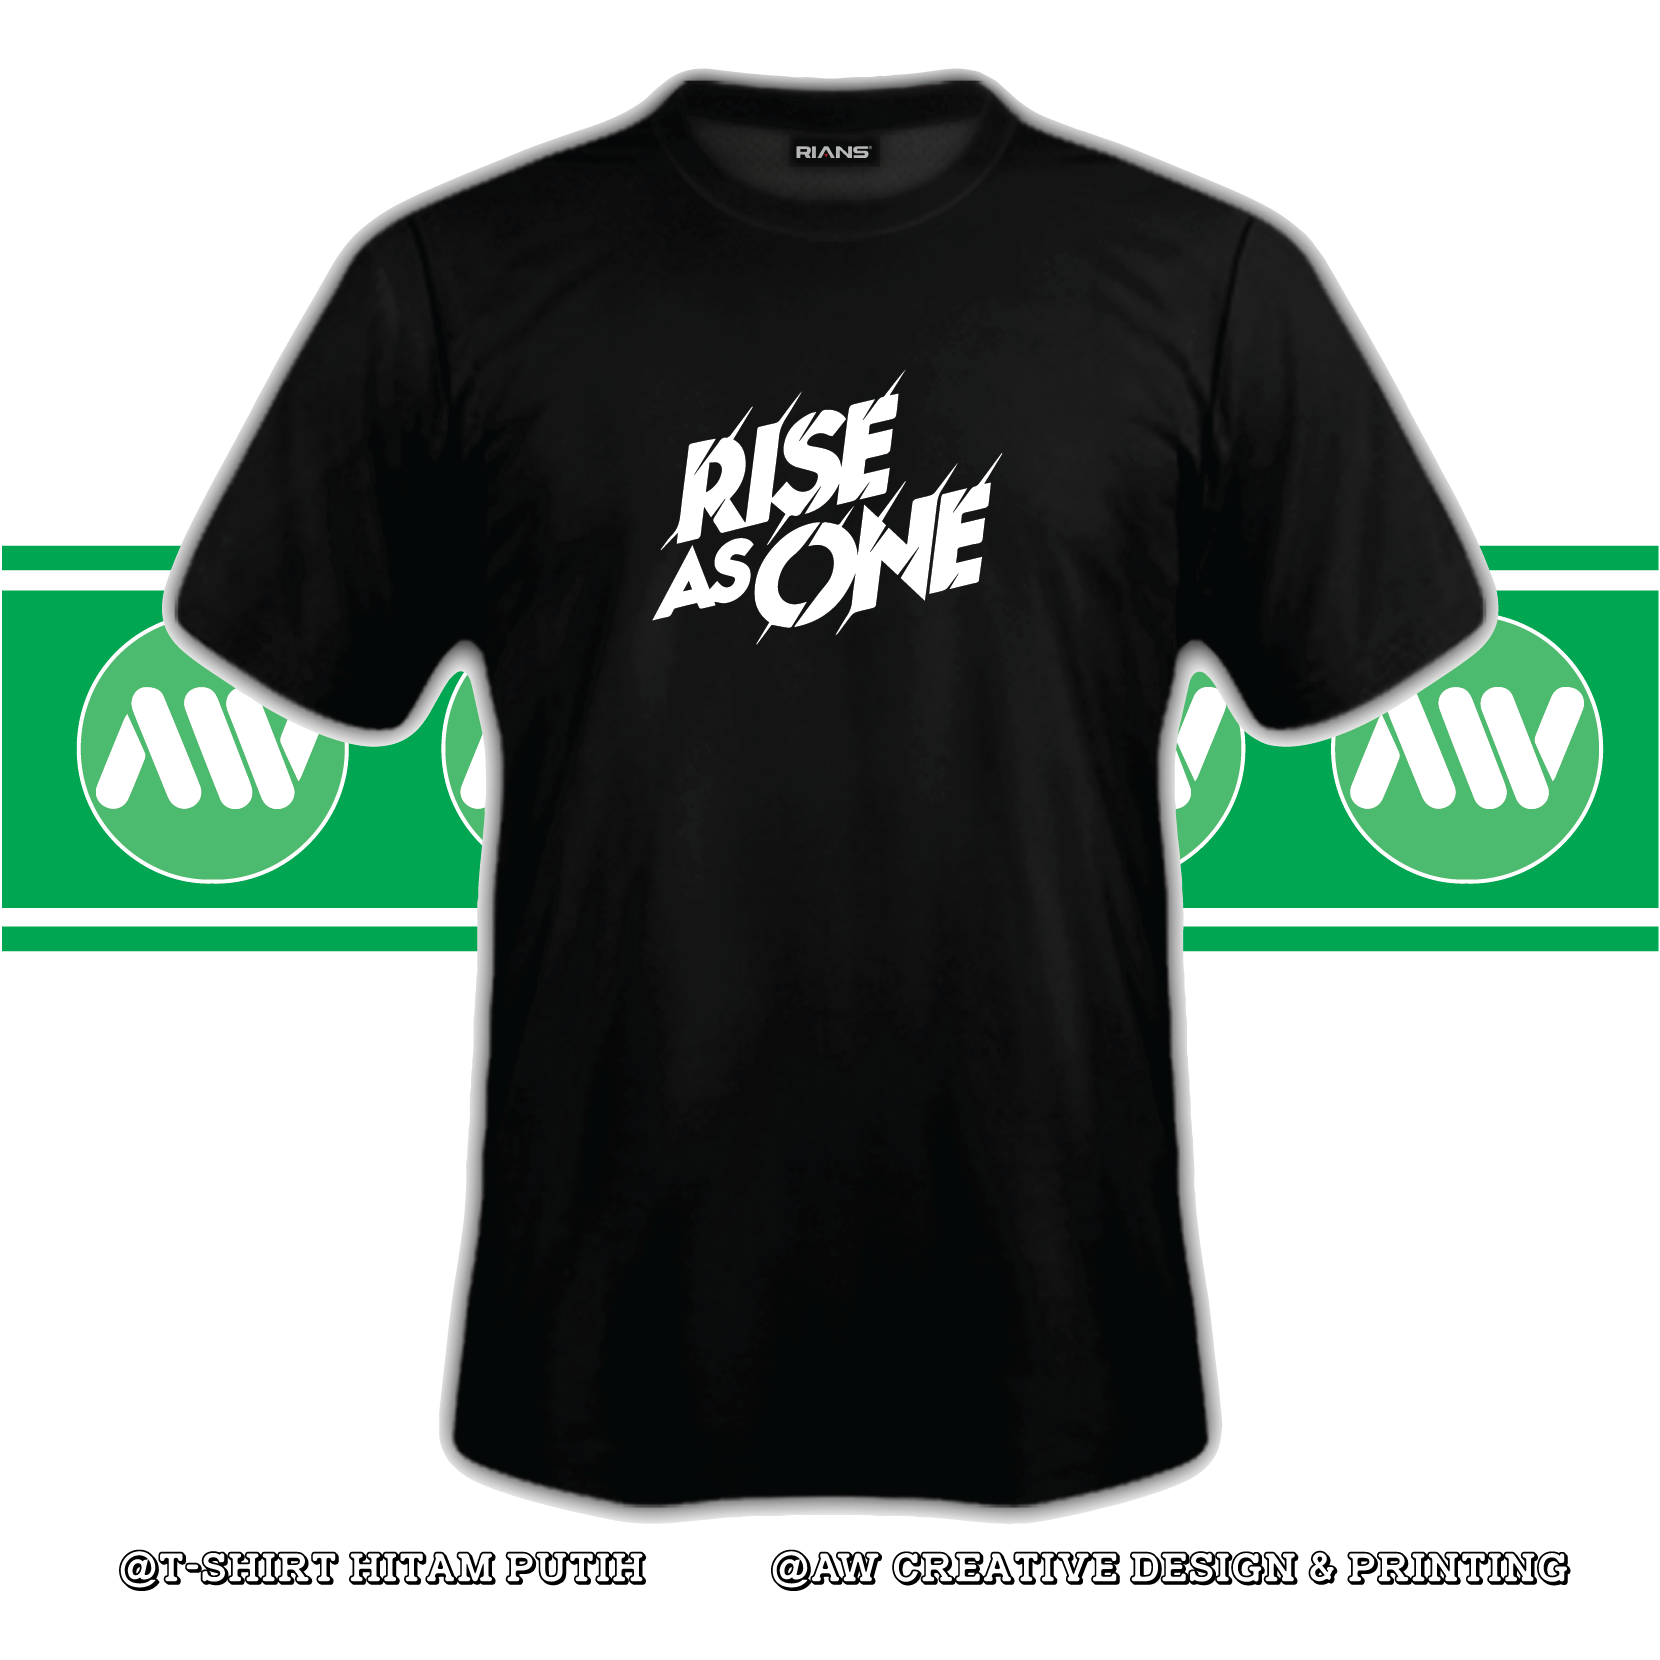 T-Shirt Rise As One 100% Cotton Baju Tshirt Black White Hitam Putih Bossku